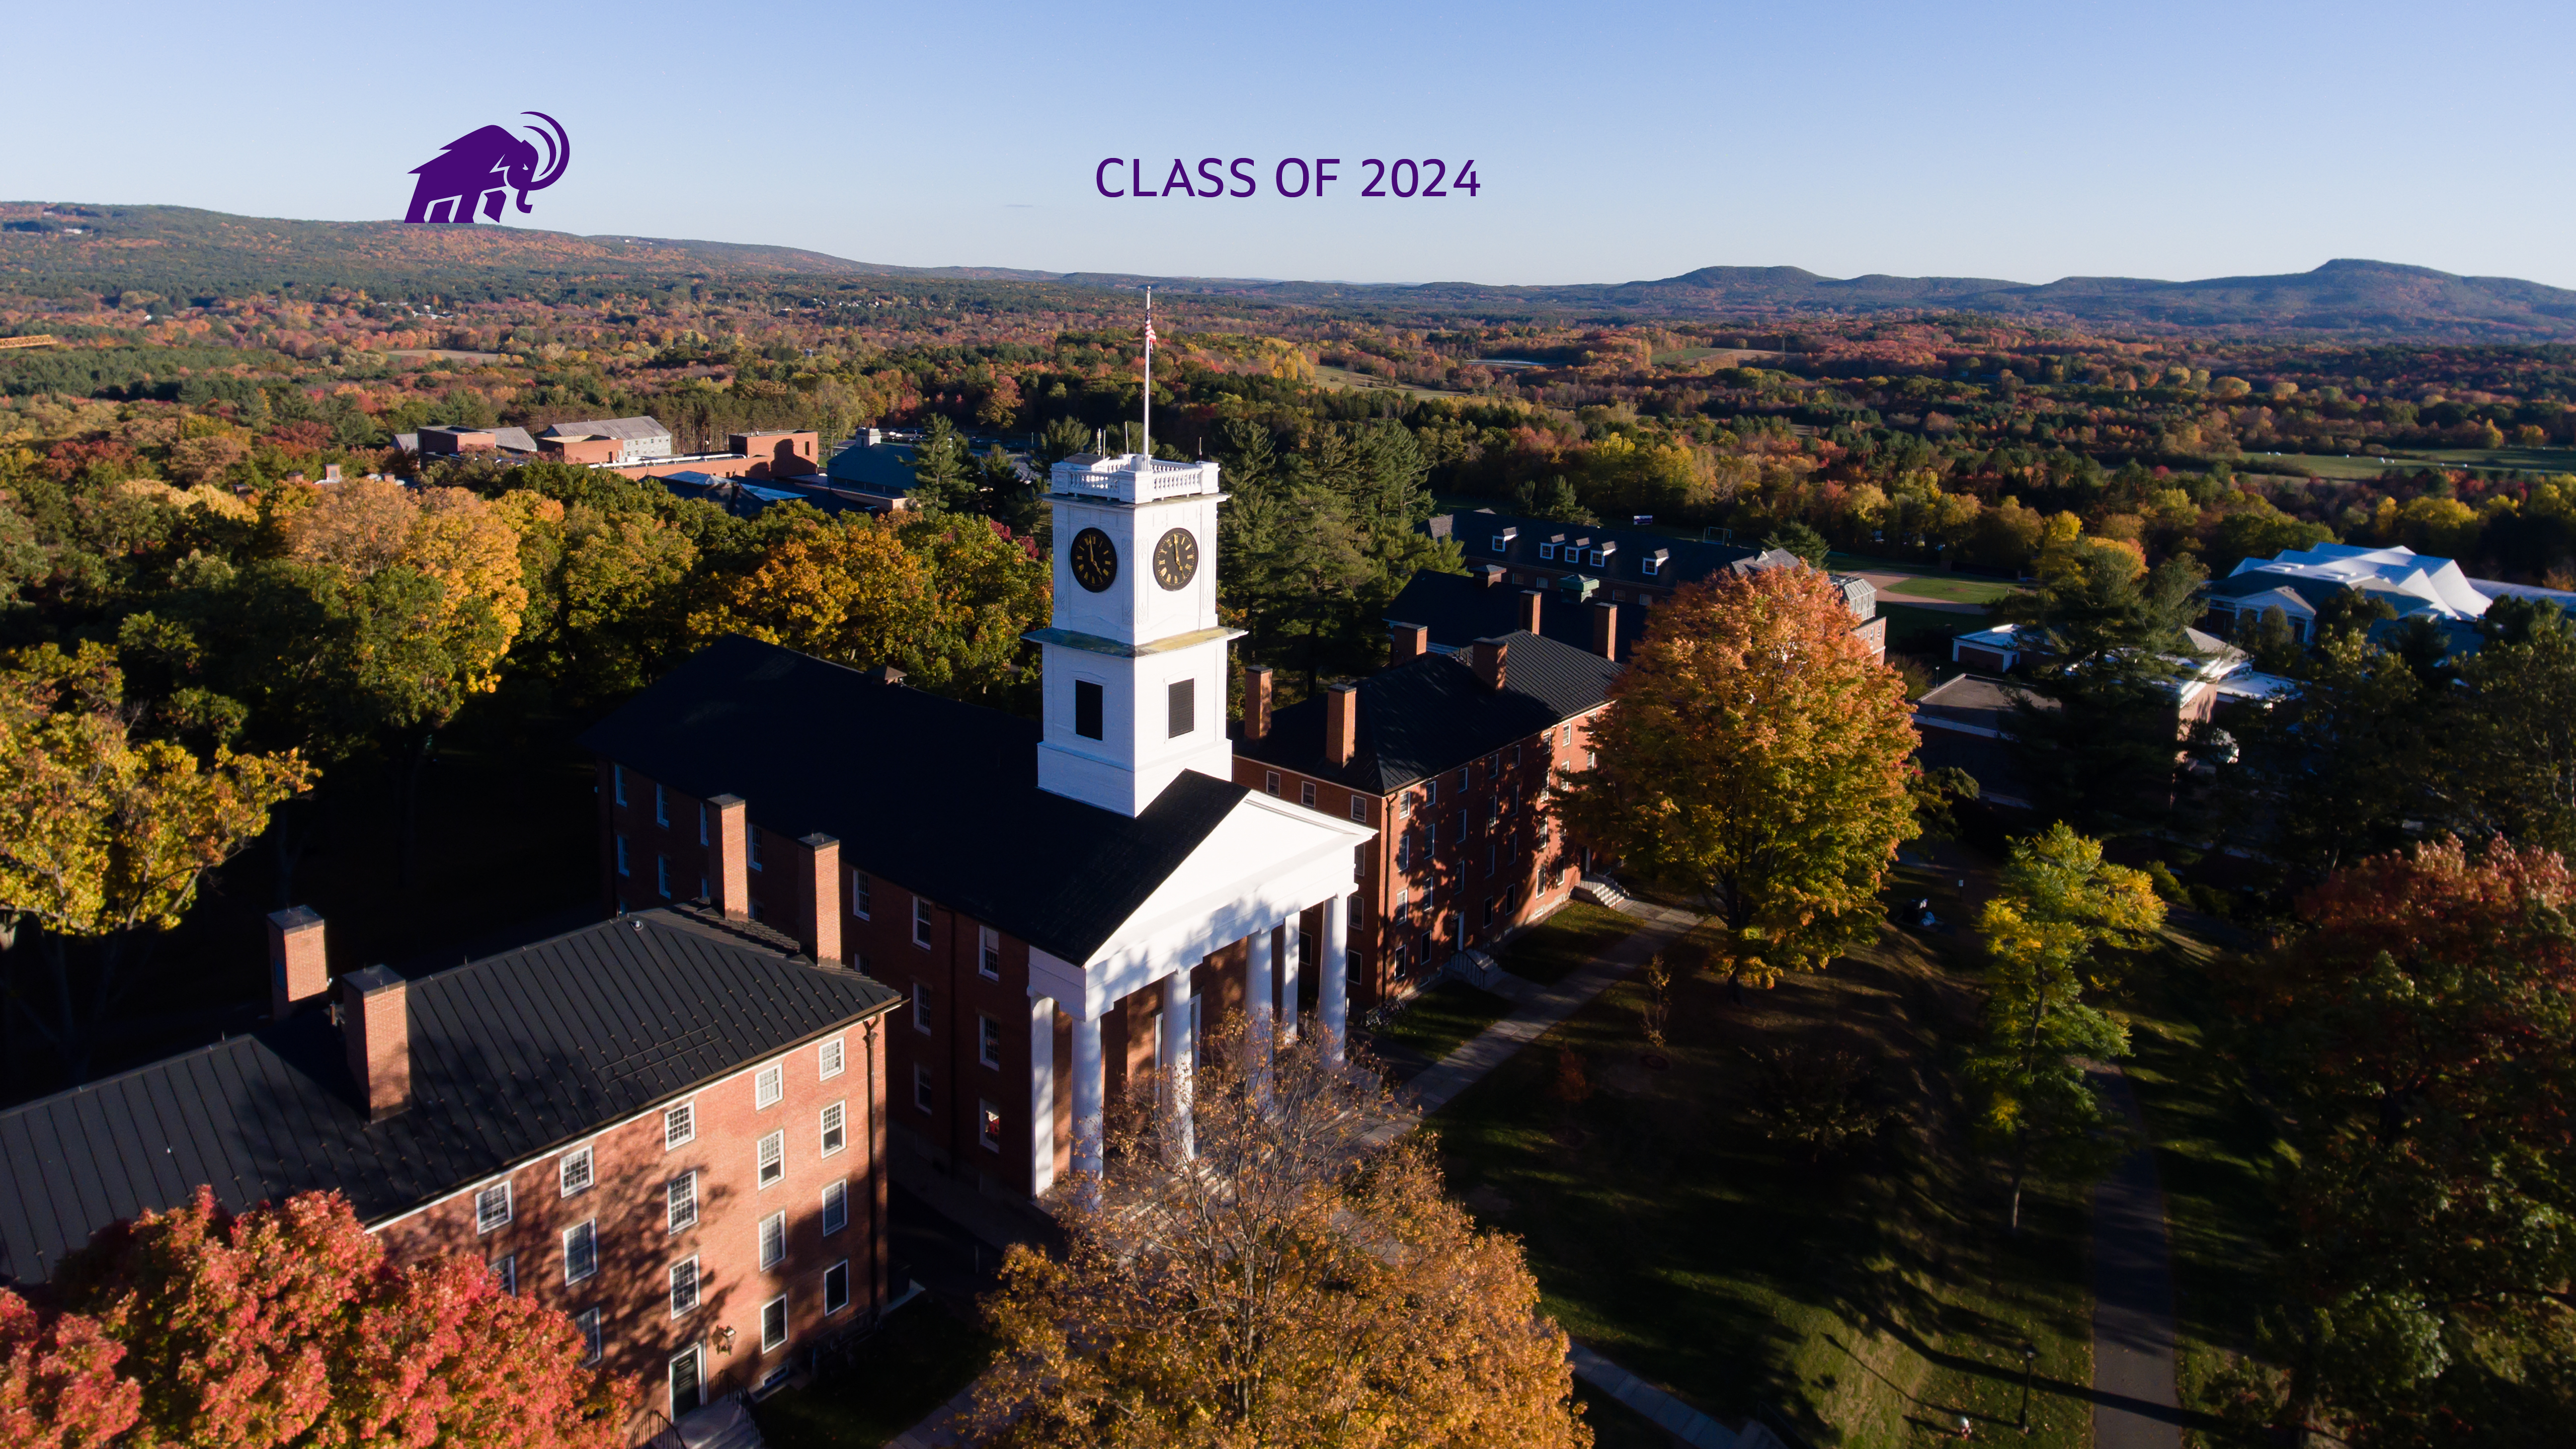 Class of 2024 on an aerial photo of campus showing Johnson Chapel and a mammoth walking on the range